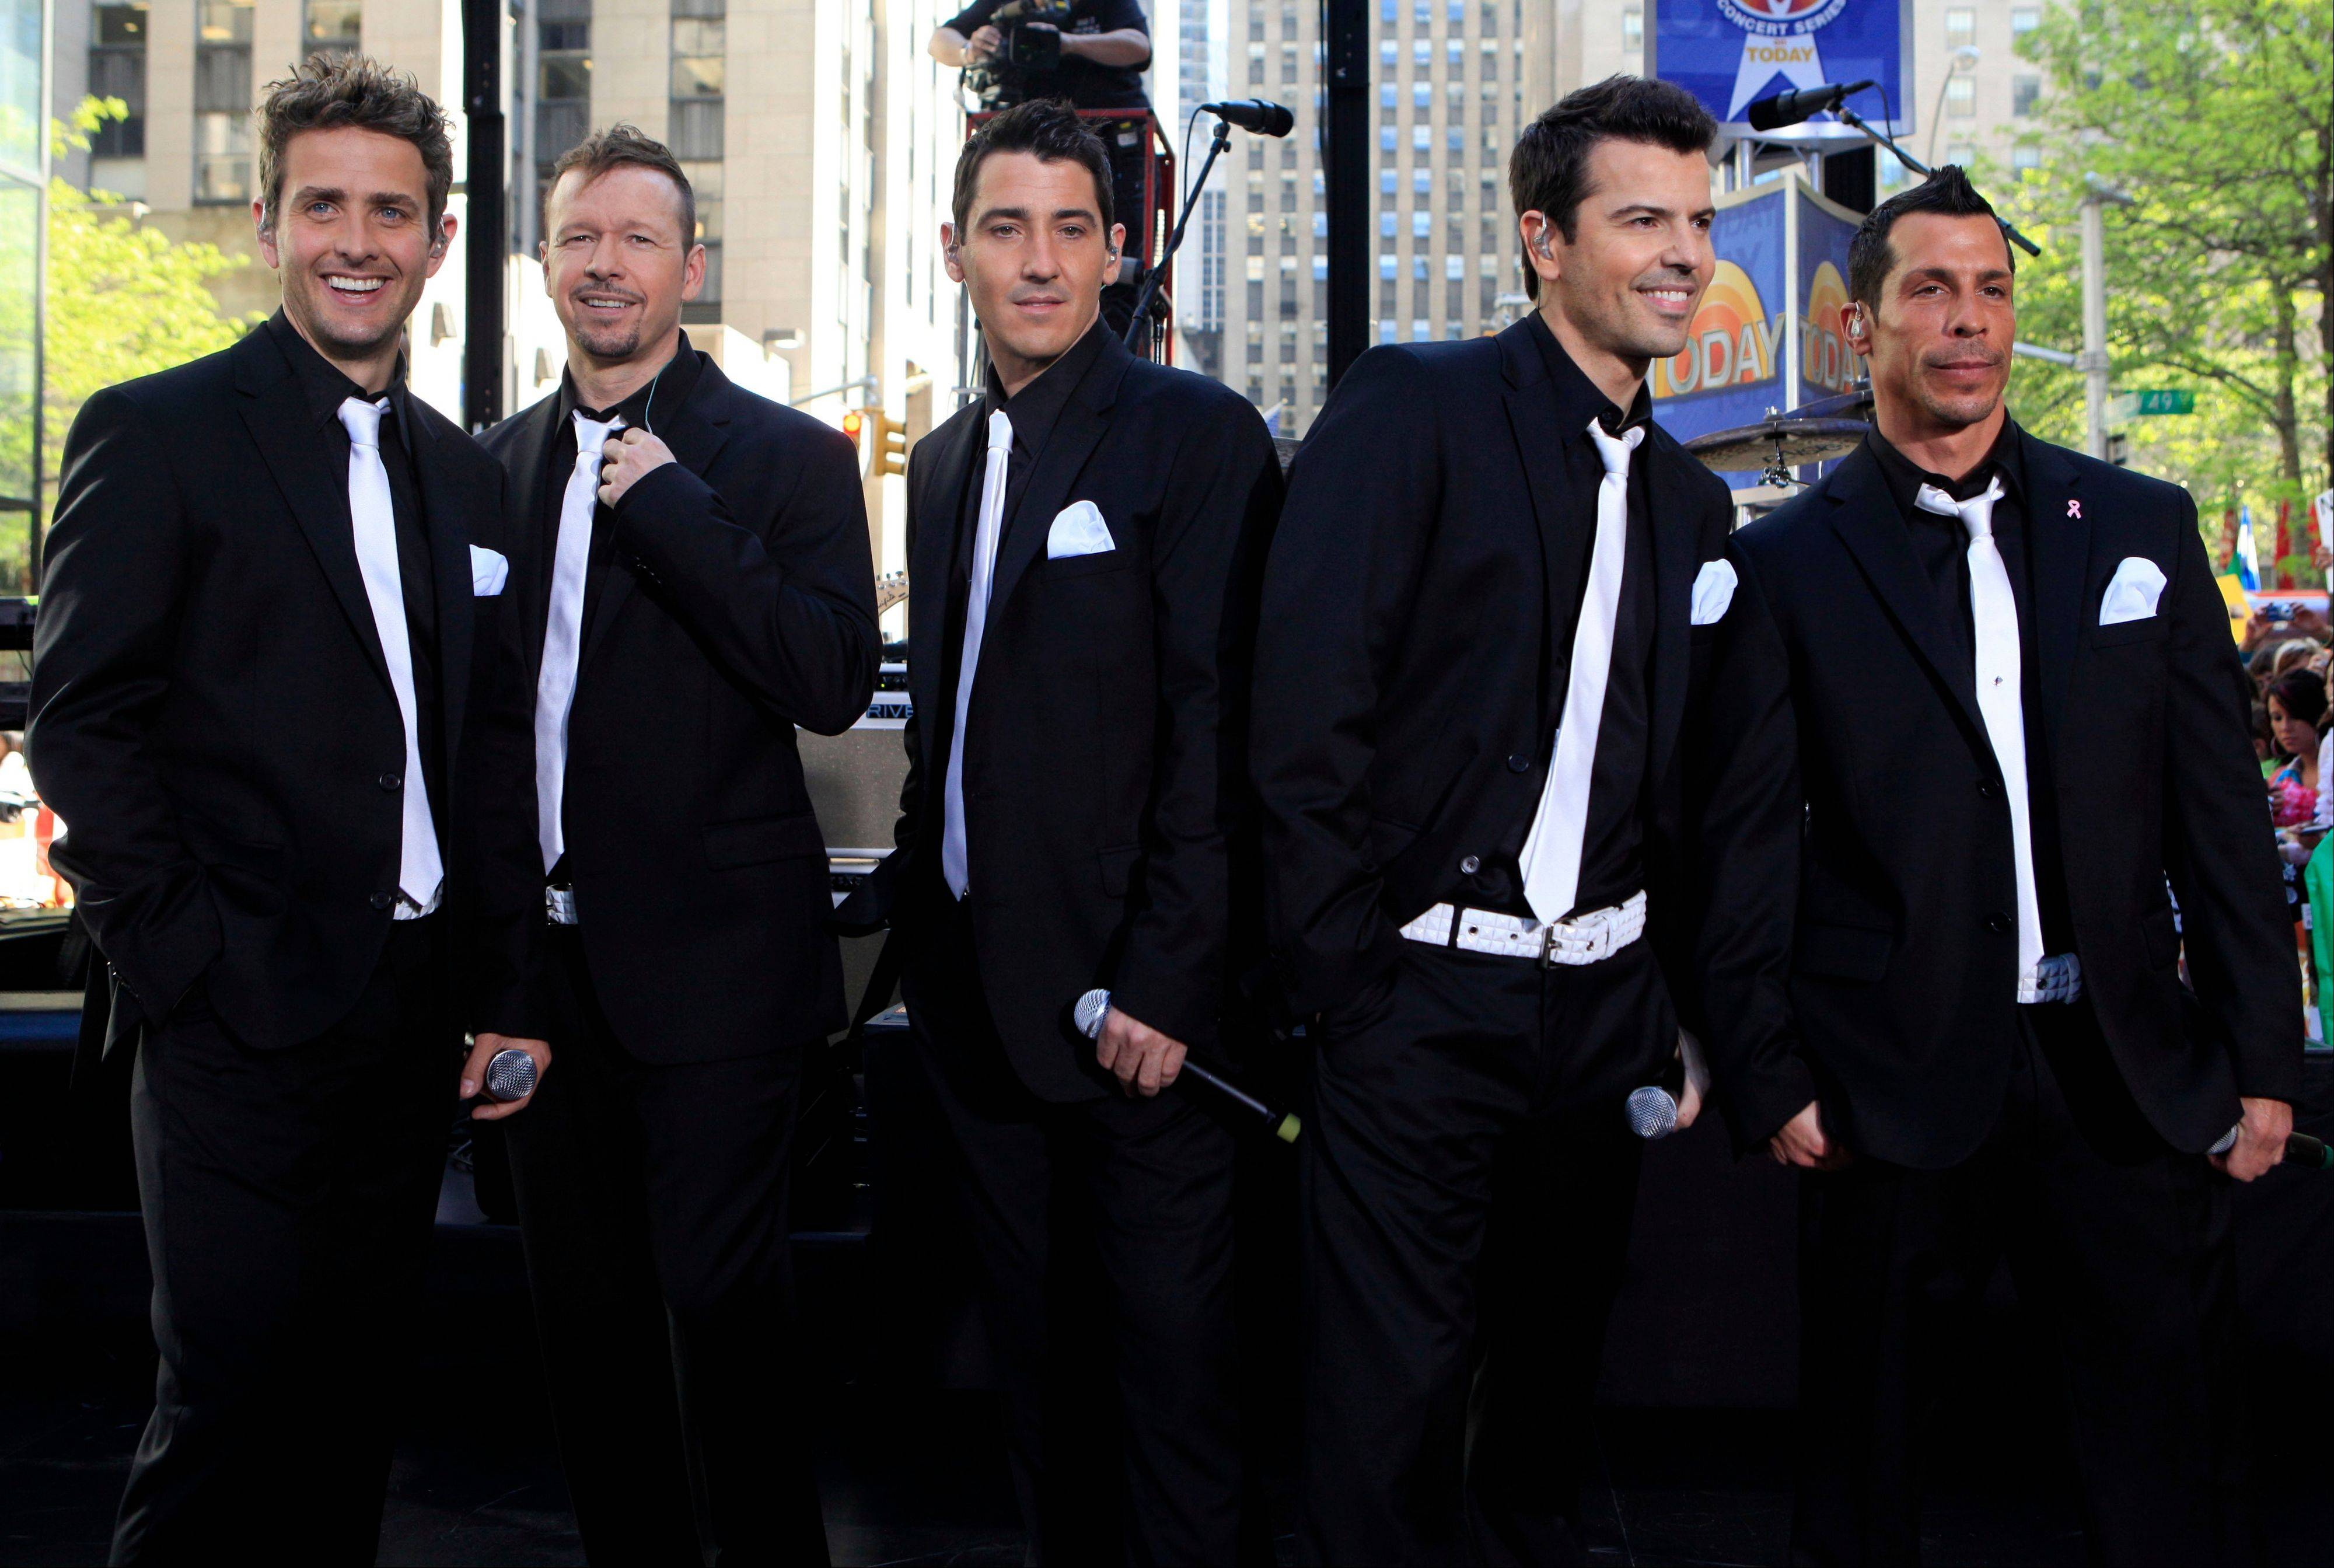 The New Kids on the Block will perform during a Boston Marathon benefit concert May 30. The show, at the TD Garden, will benefit One Fund -- the collection of donations that will be distributed to the survivors of the April 15 bombings and the families of those killed in the attack.